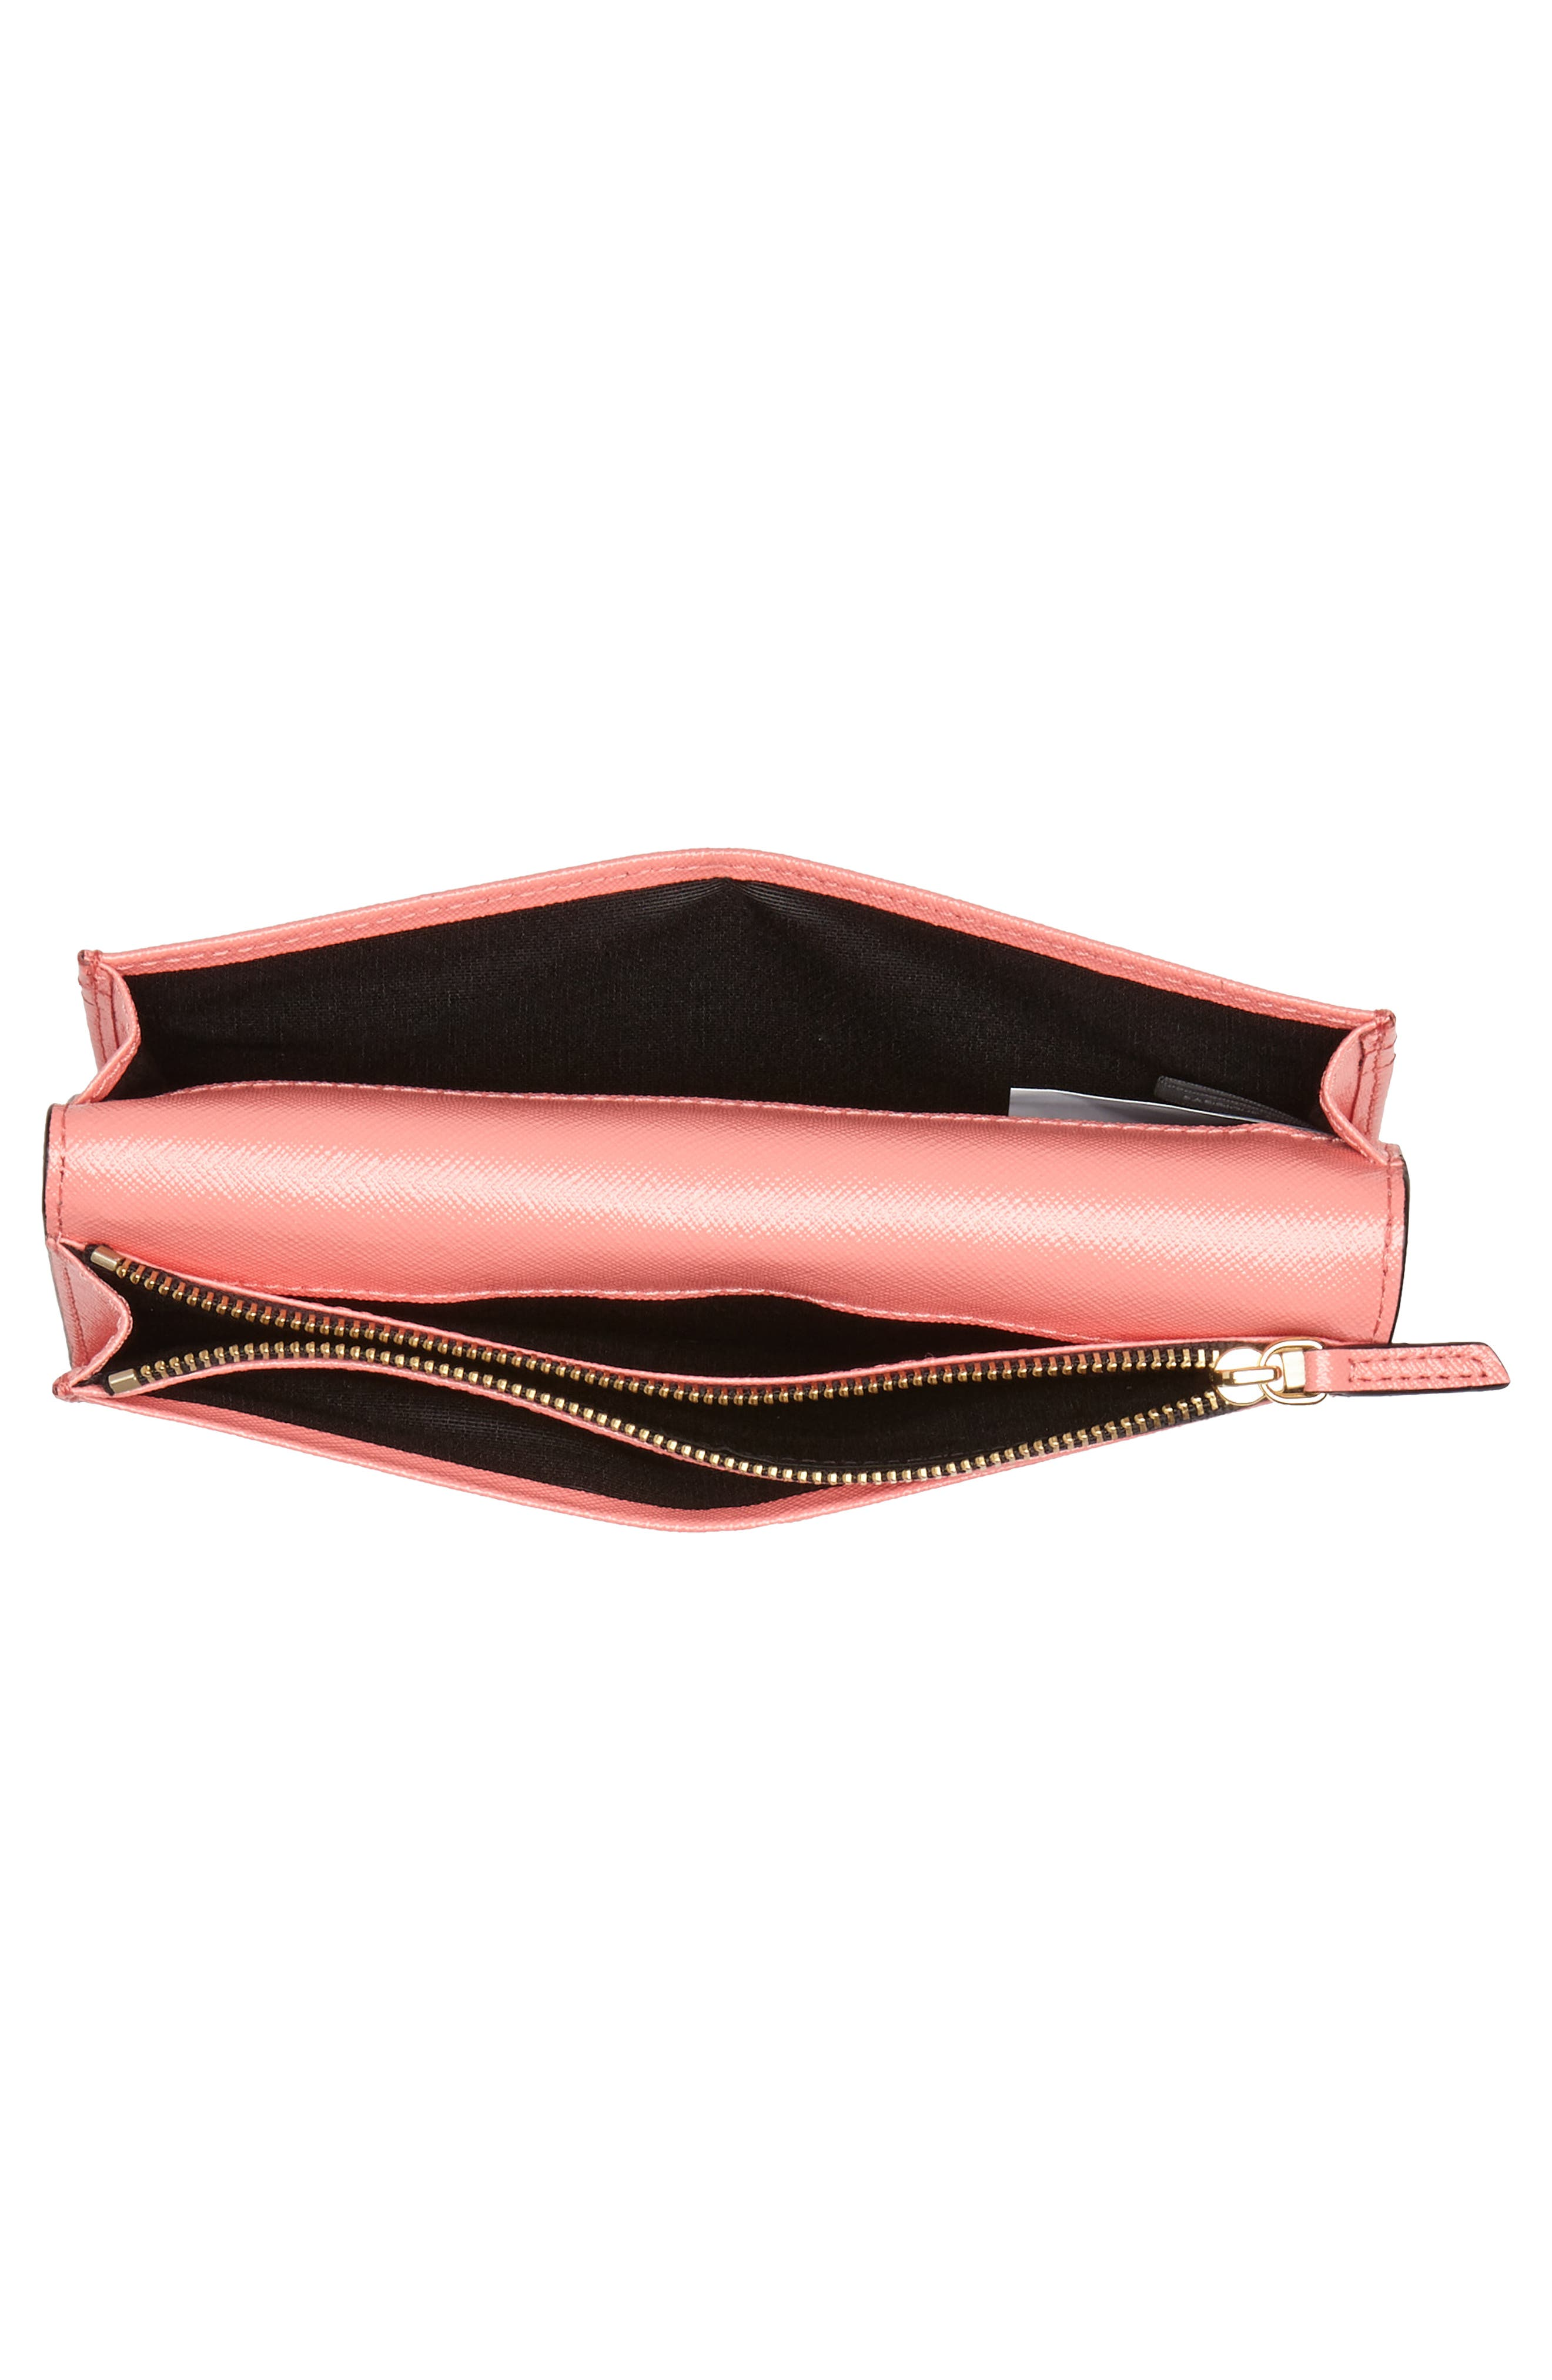 Alternate Image 3  - MARC JACOBS Snapshot Open Face Leather Wallet